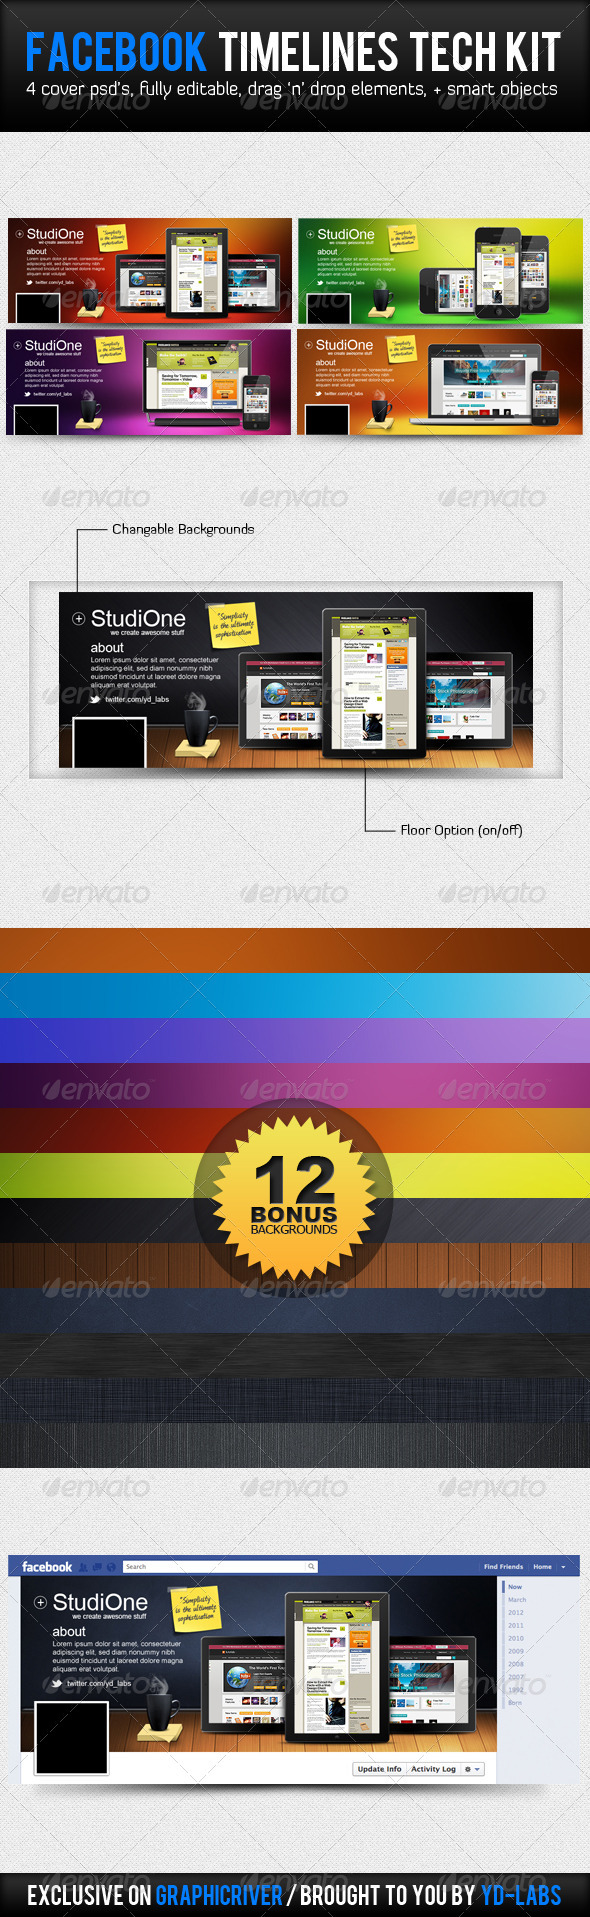 GraphicRiver Facebook Tech Kit 2878471